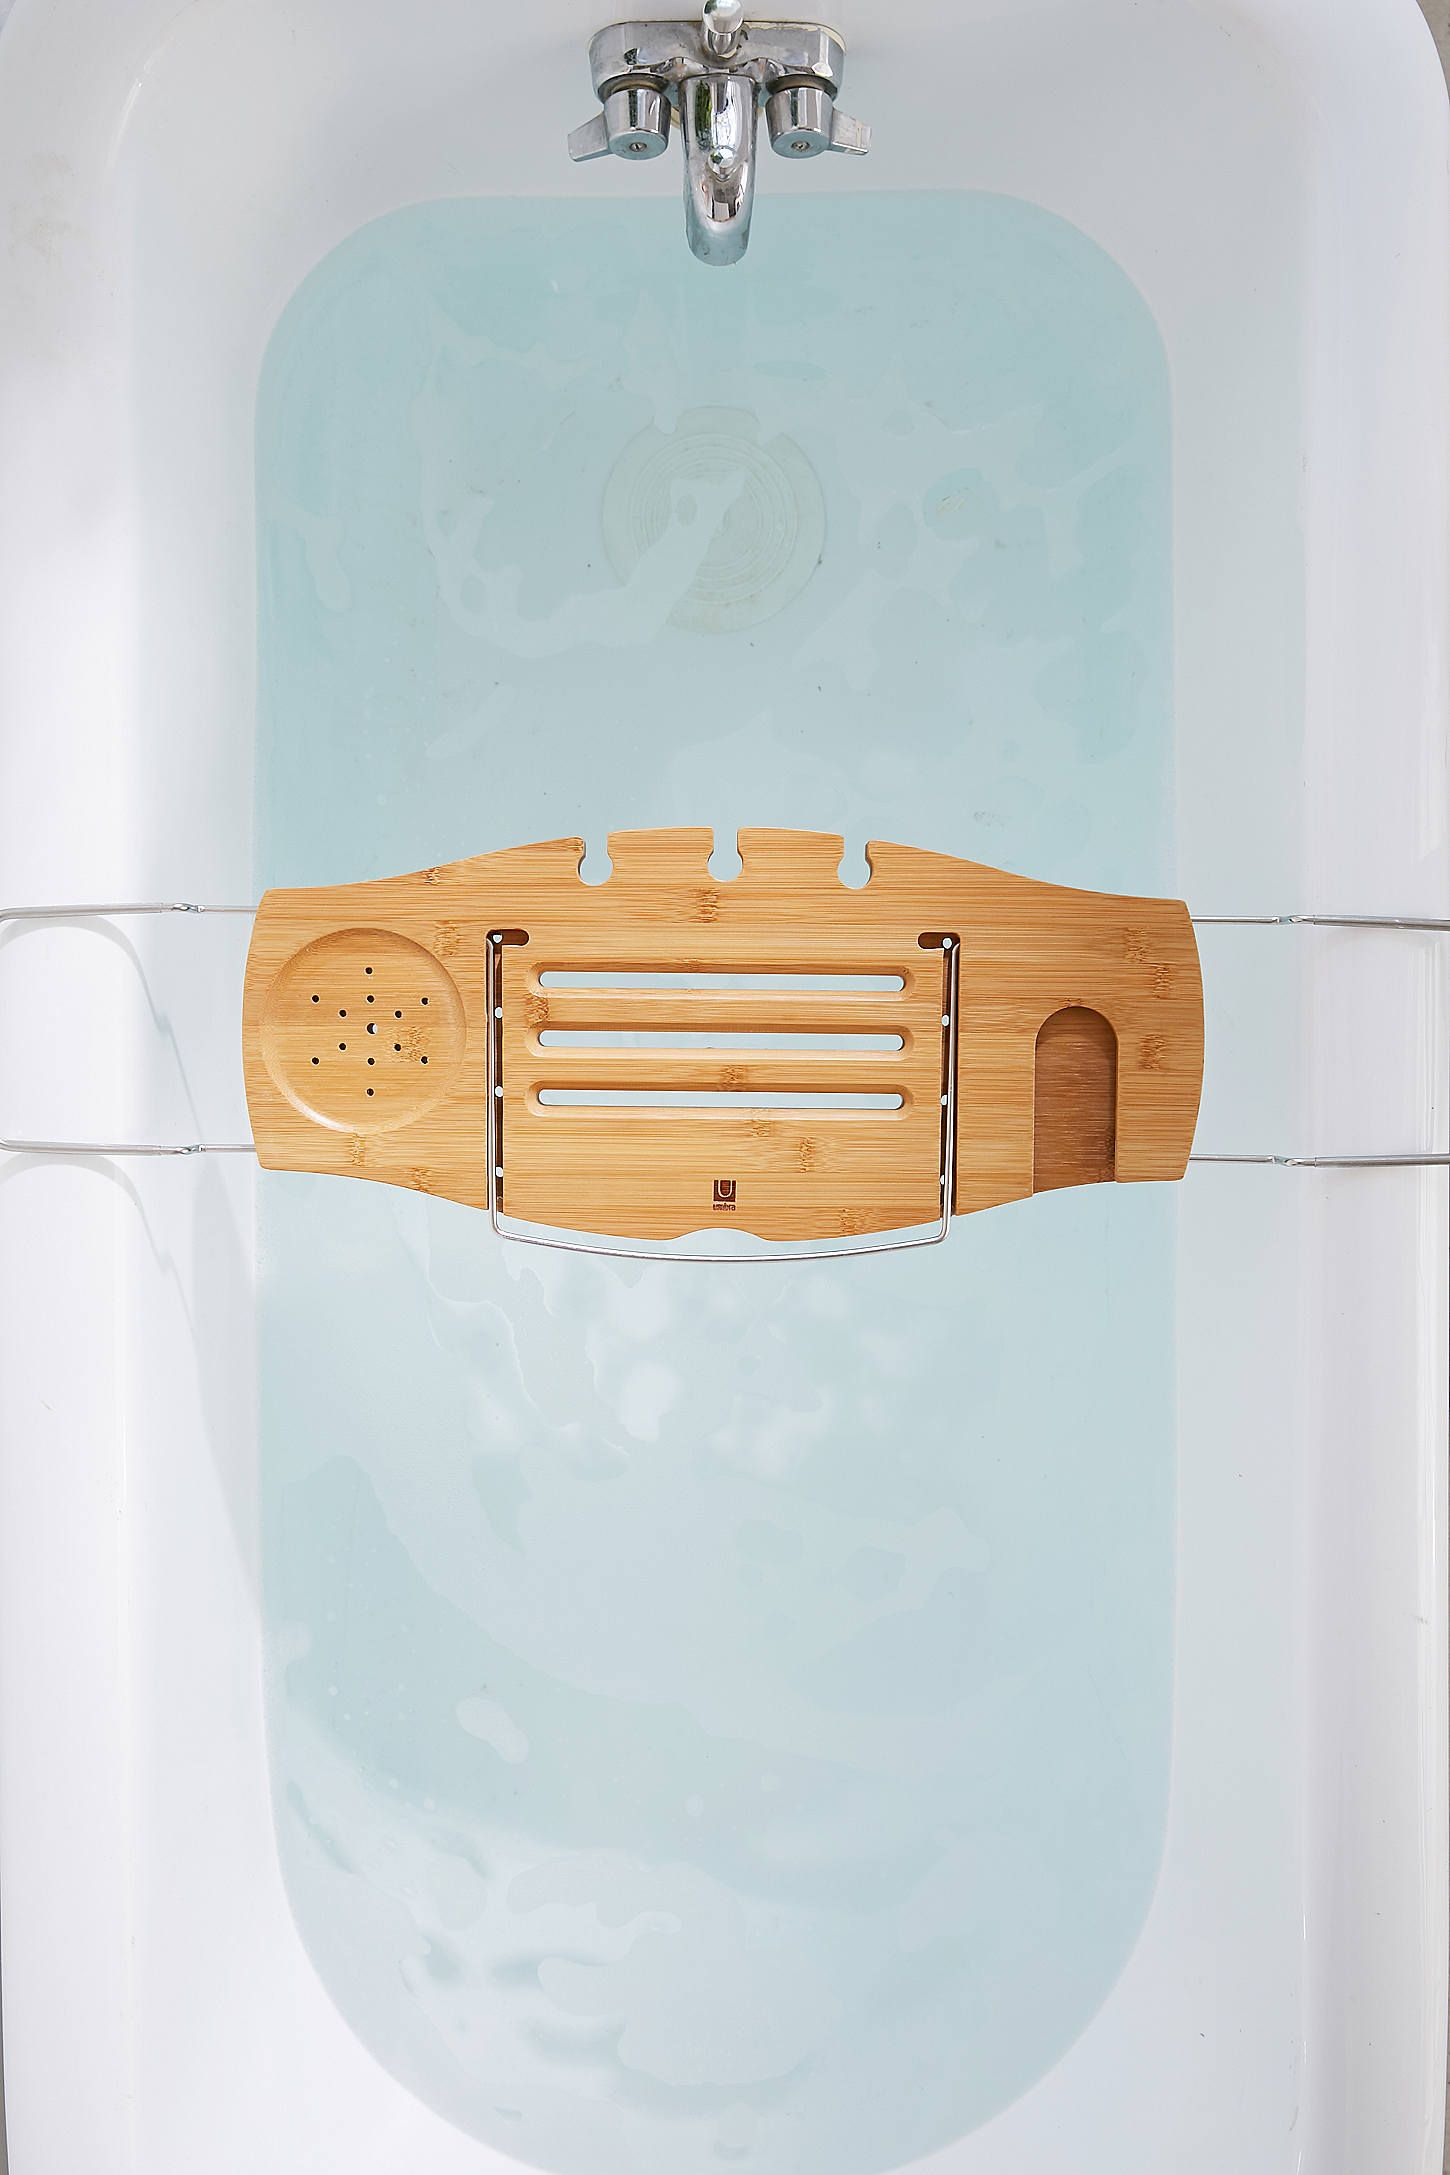 Me Time Bamboo Bath Tray Caddy | Pacifica Home Furniture | Pinterest ...